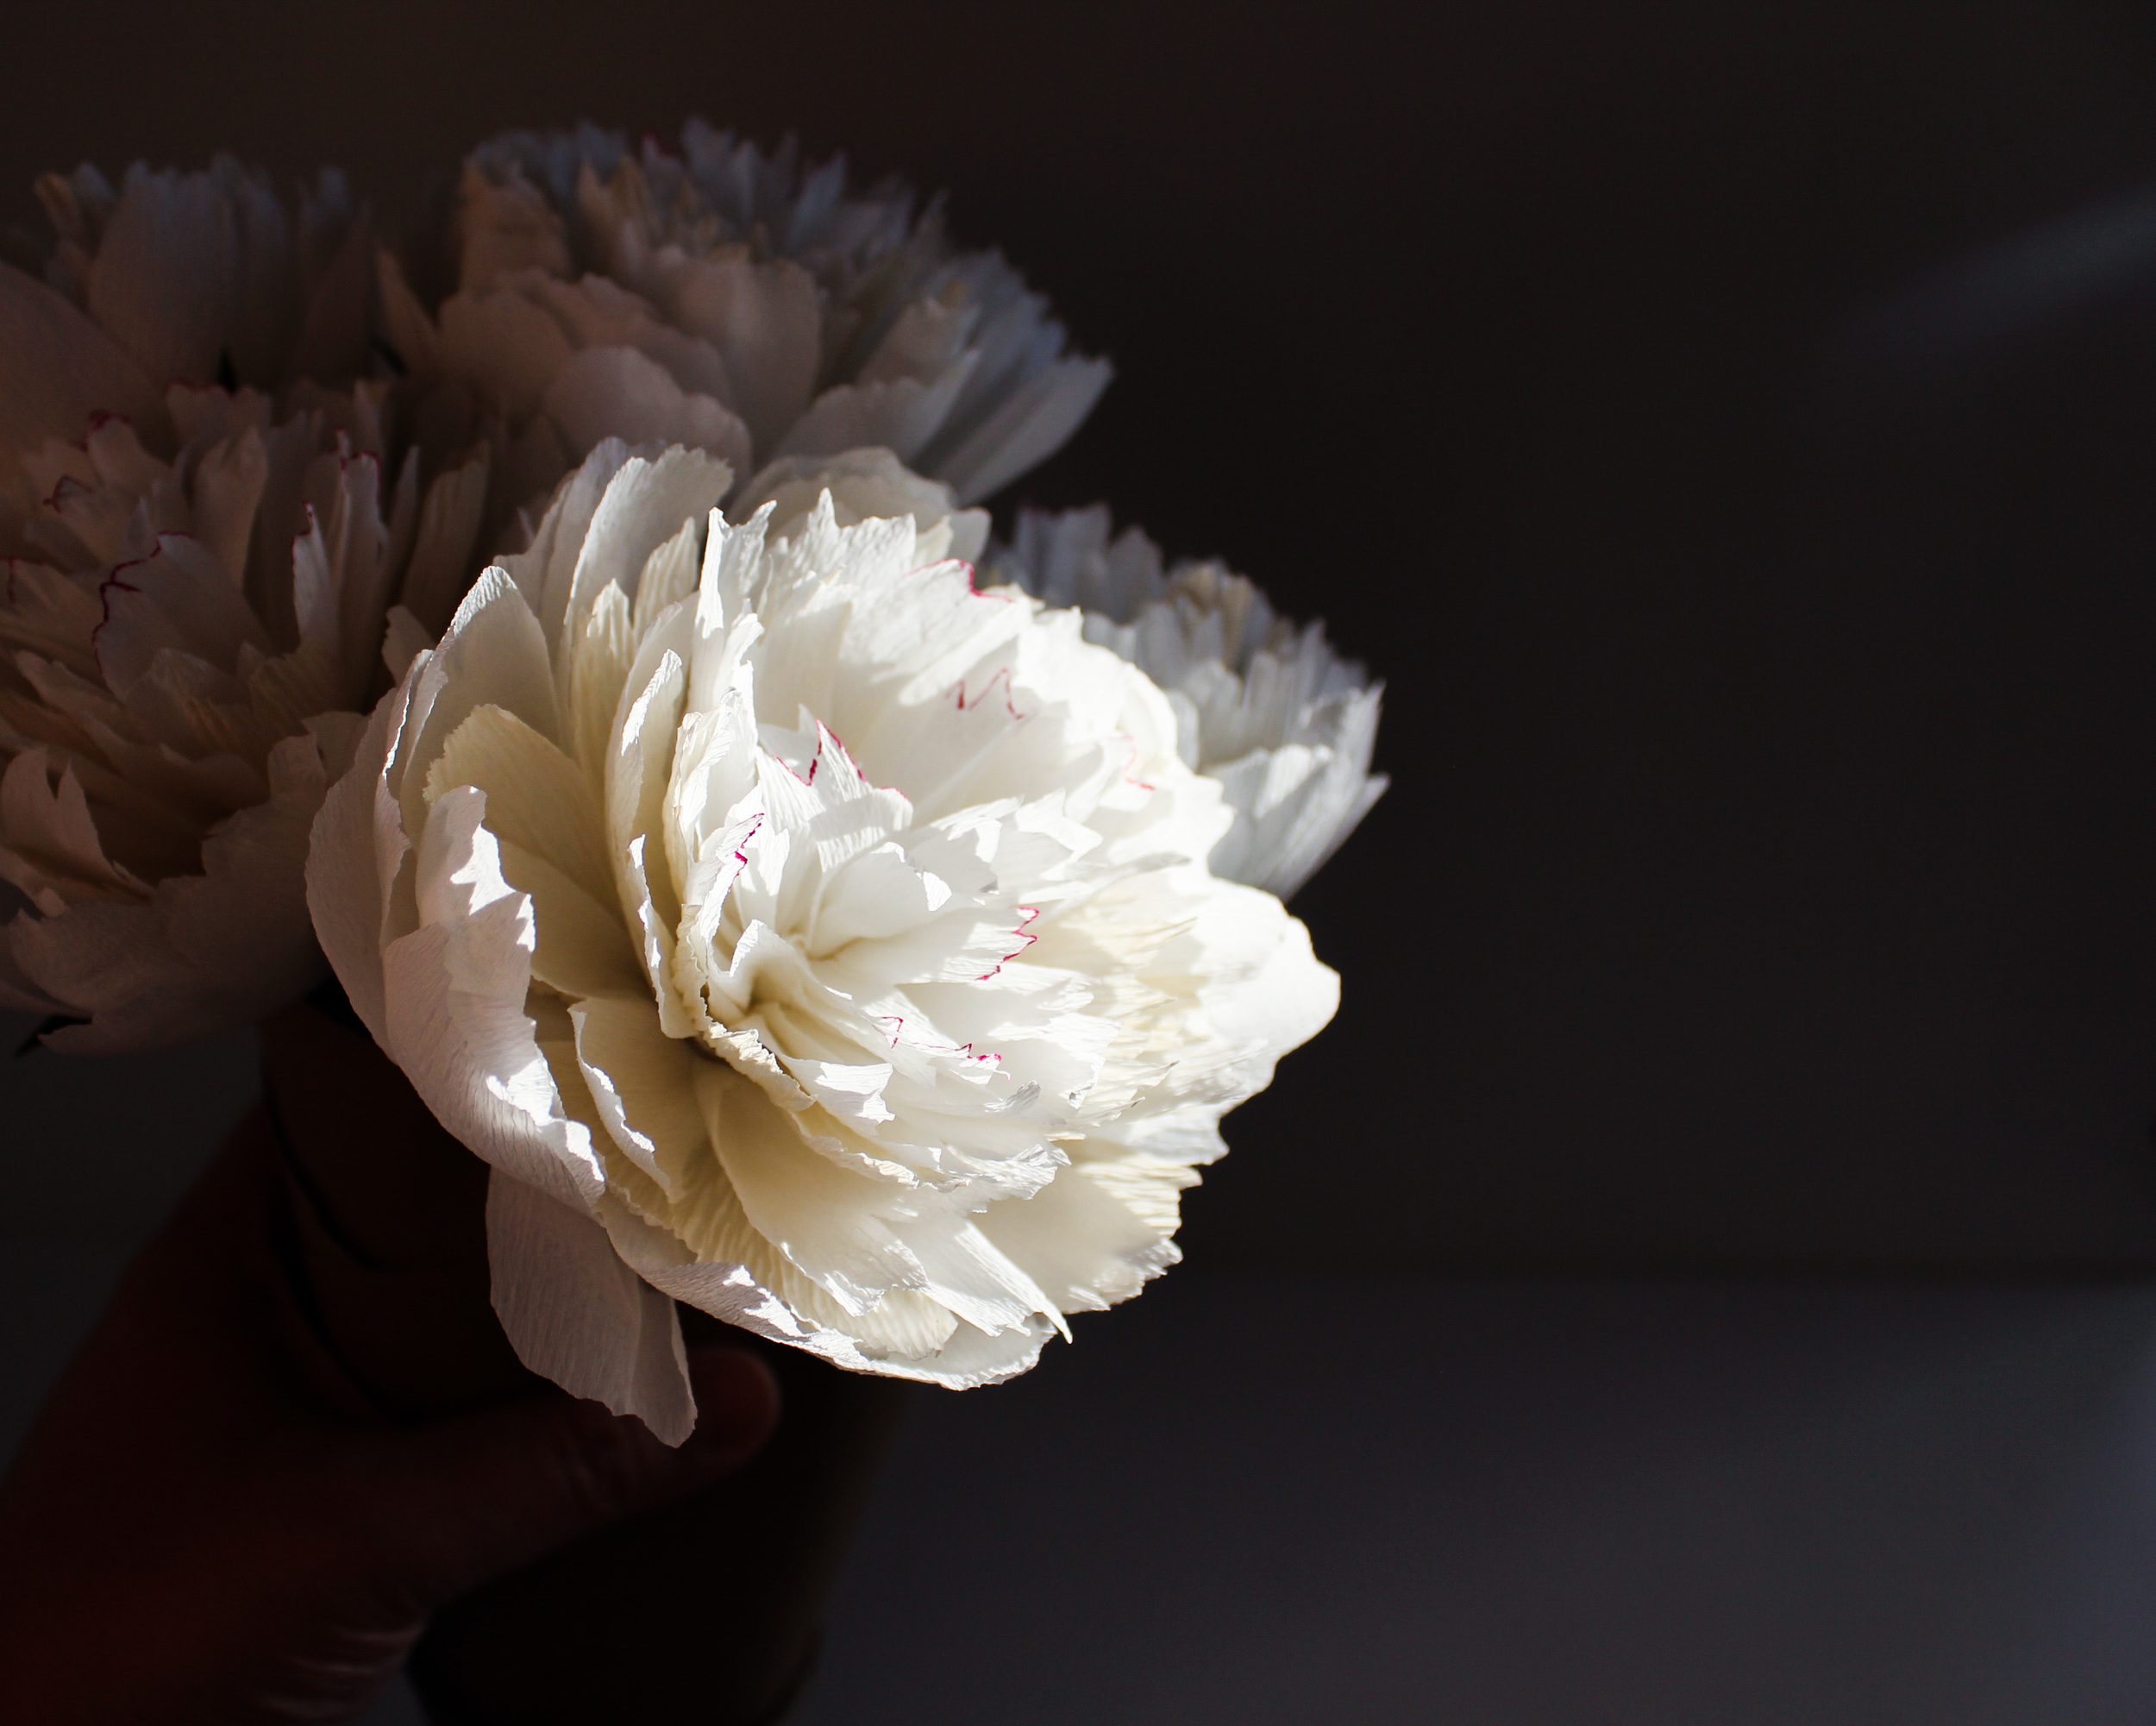 Paper Peony by The Cobra Lily